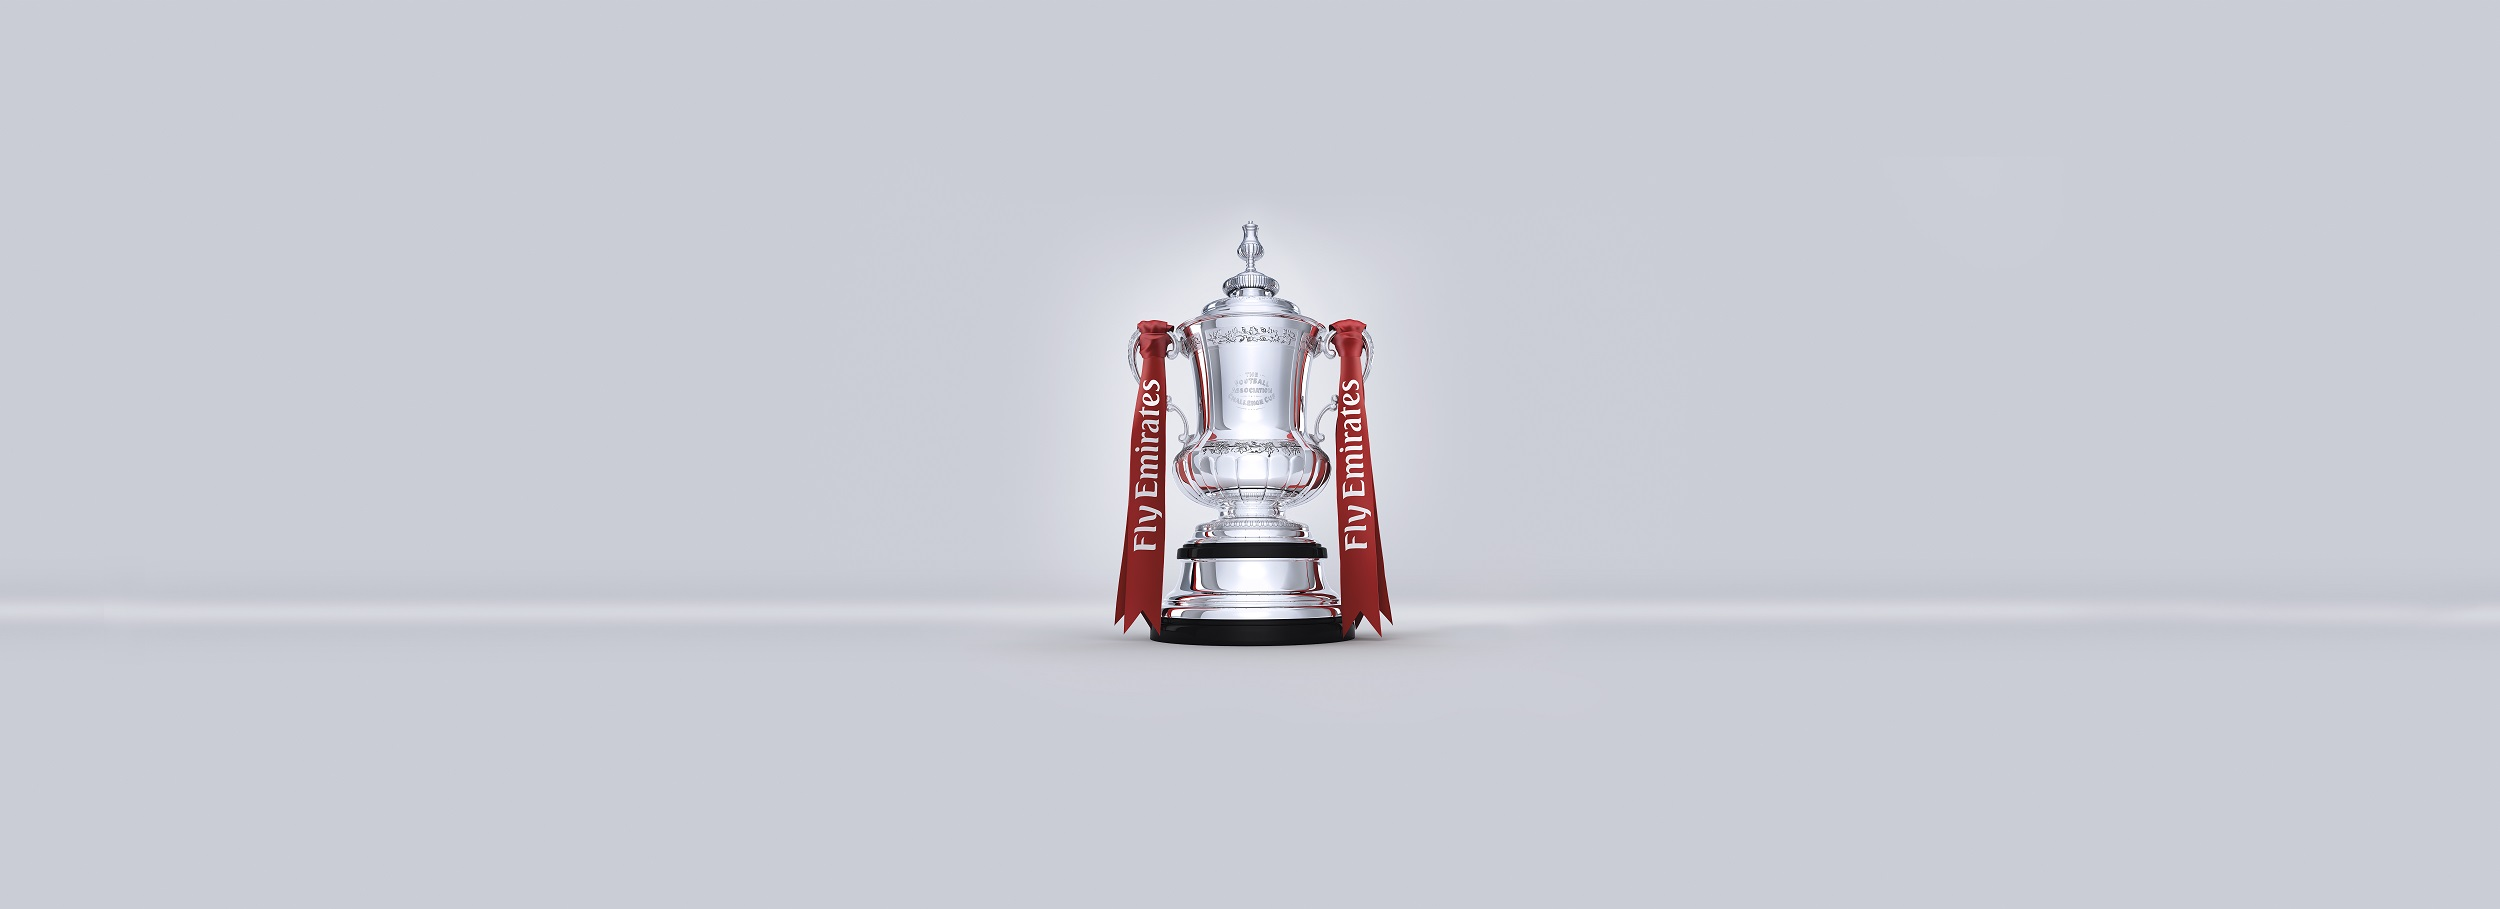 Preview: Marske United vs South Shields – Emirates FA Cup